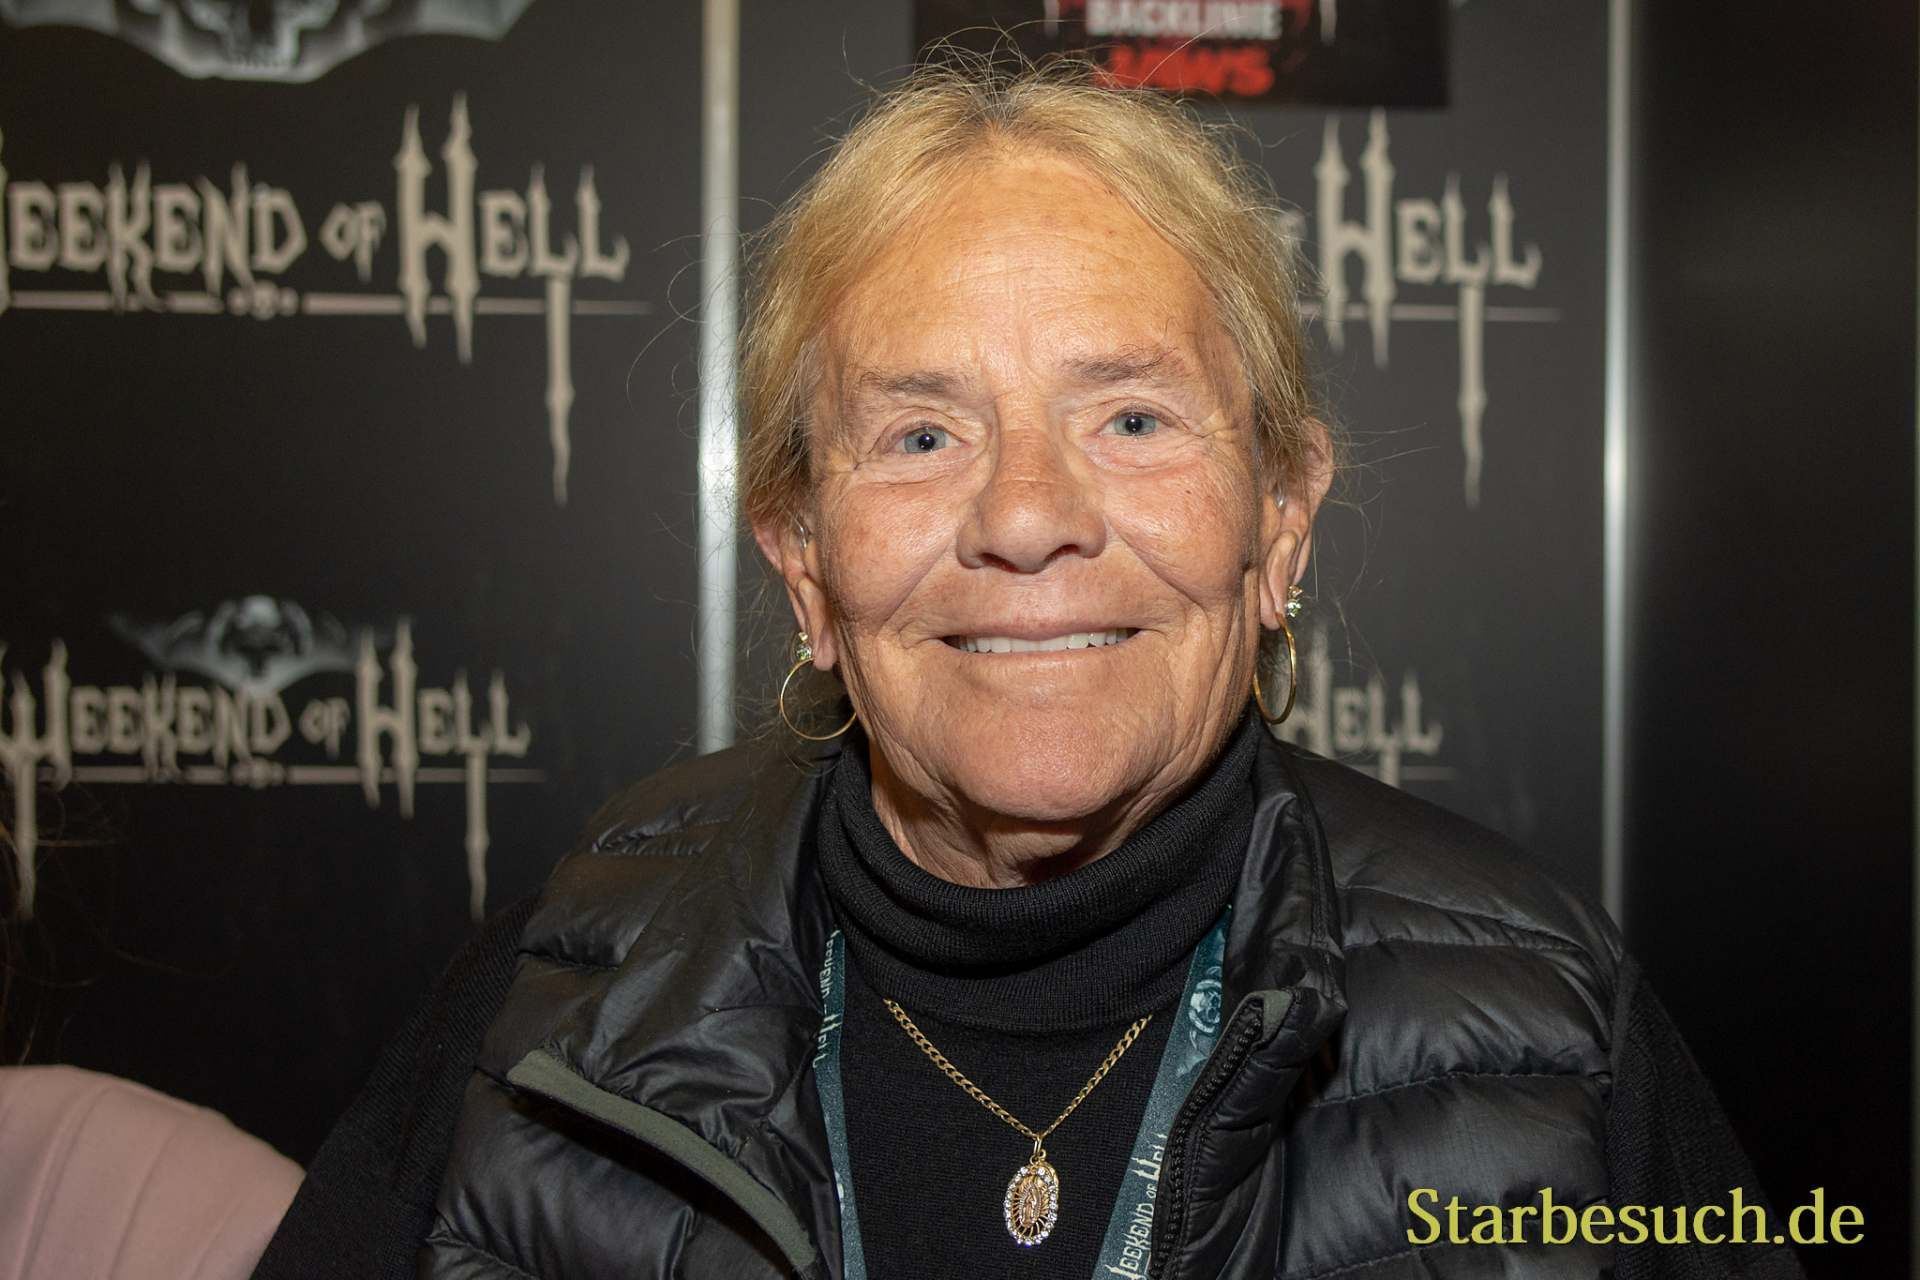 DORTMUND, GERMANY - November 3rd 2018: Susan Backlinie at Weekend of Hell 2018